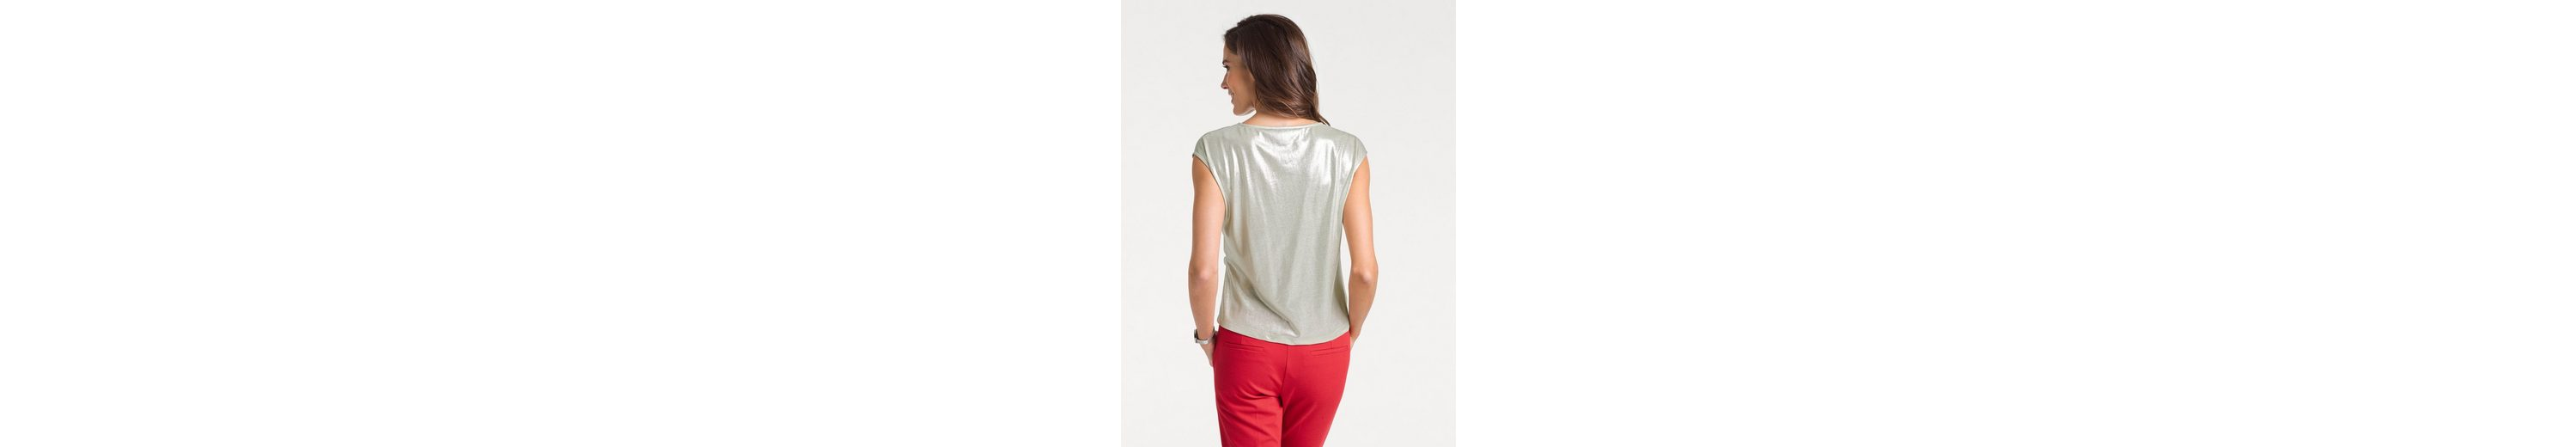 Look PATRIZIA DINI by Heine Metallic Shirttop PATRIZIA DINI by 58wnqgUF